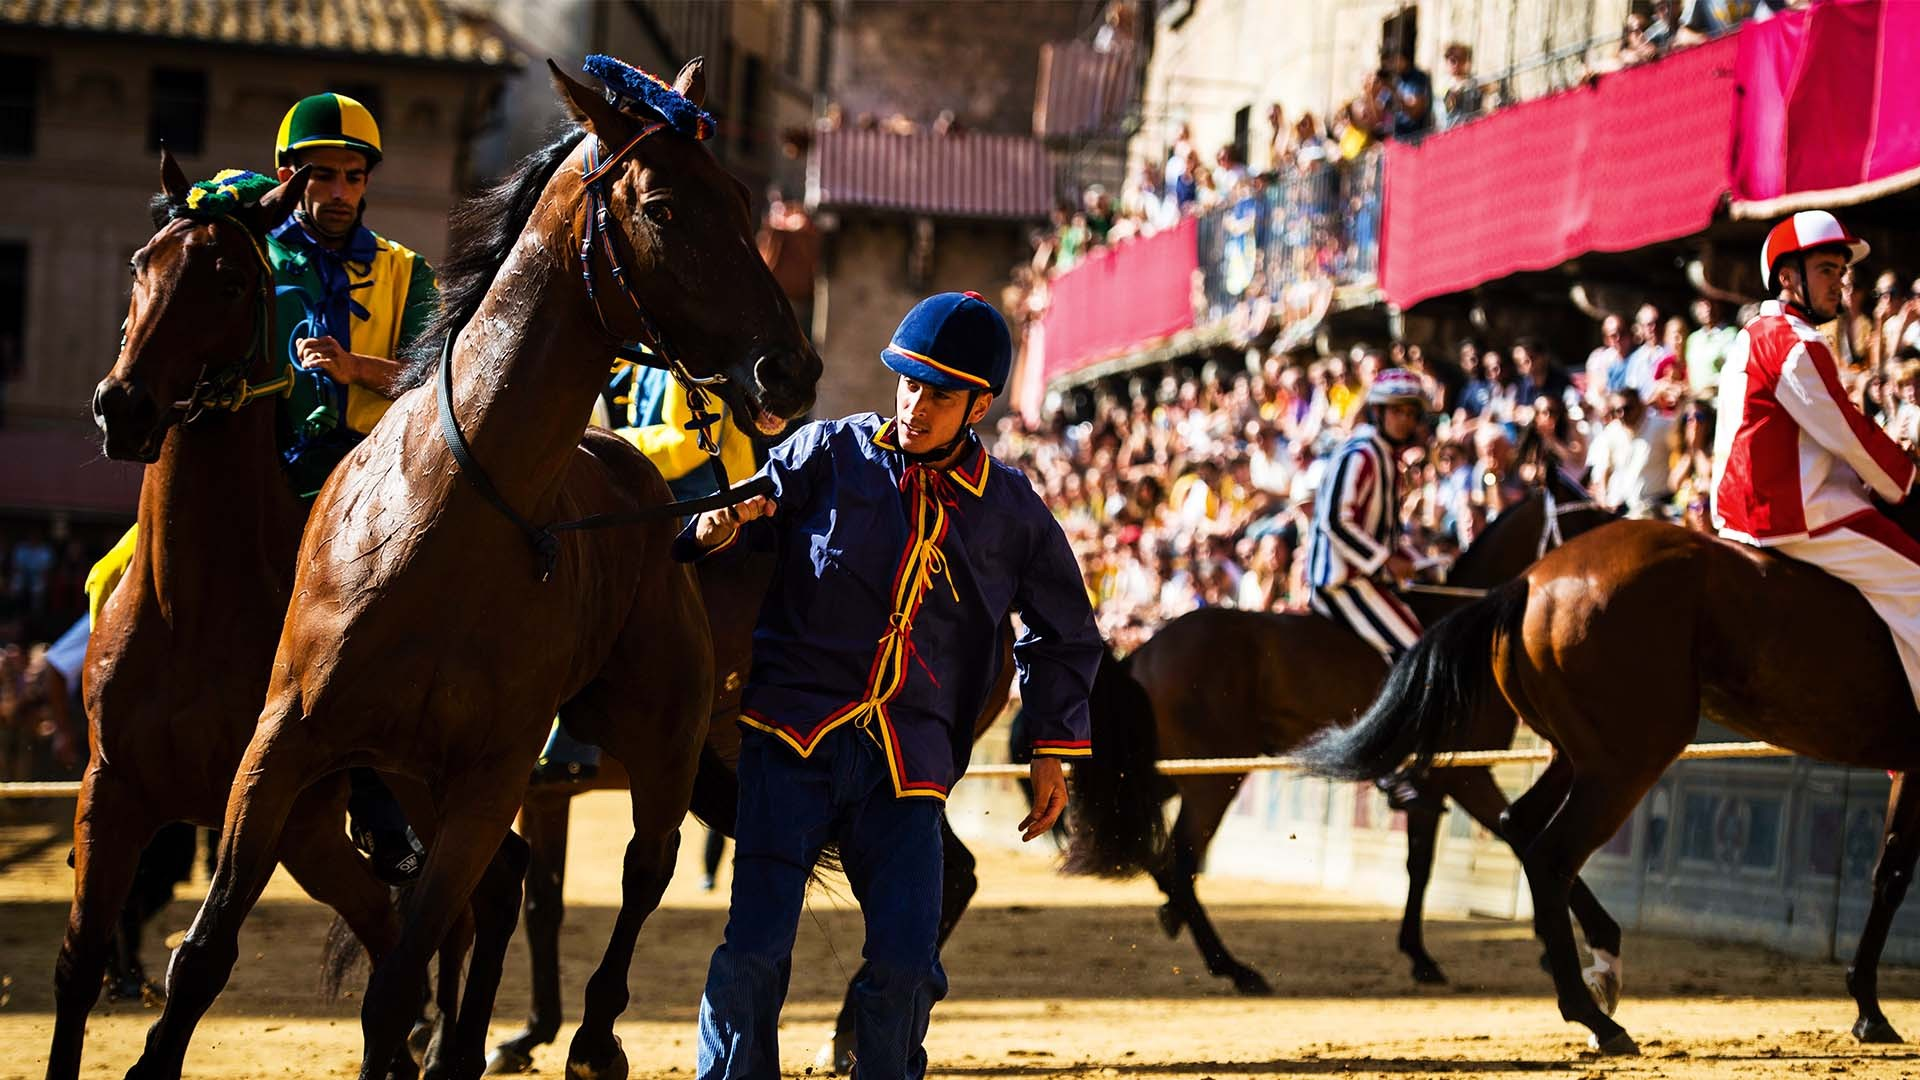 Riders in Il Palio horse race, Siena, Italy